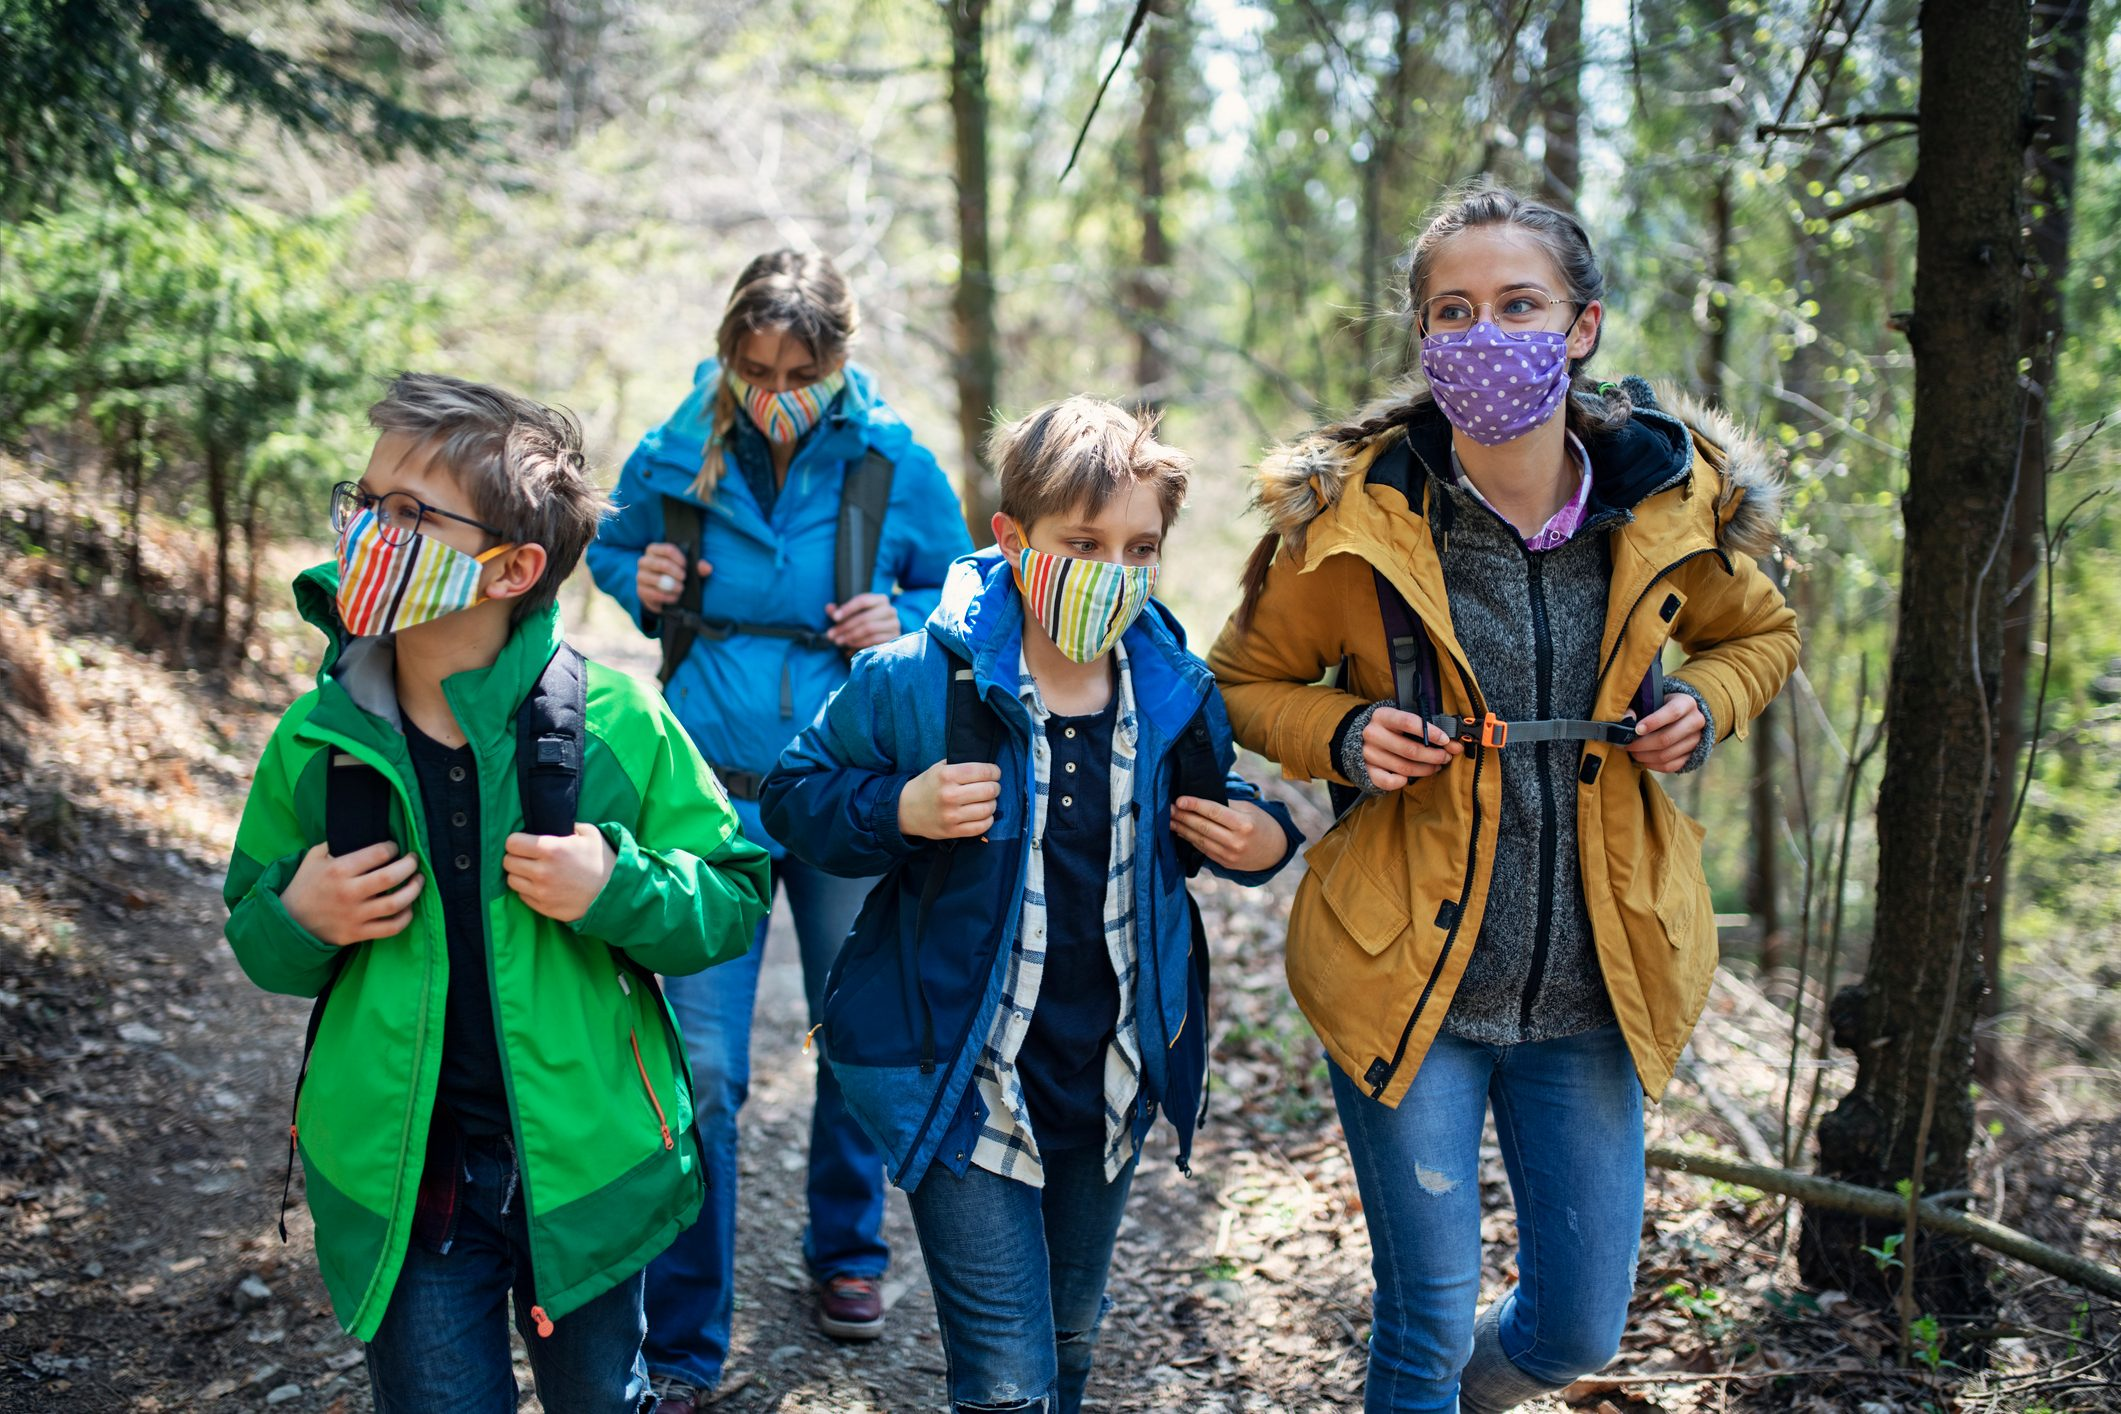 Family enjoying hiking in forest during the COVID-19 pandemic